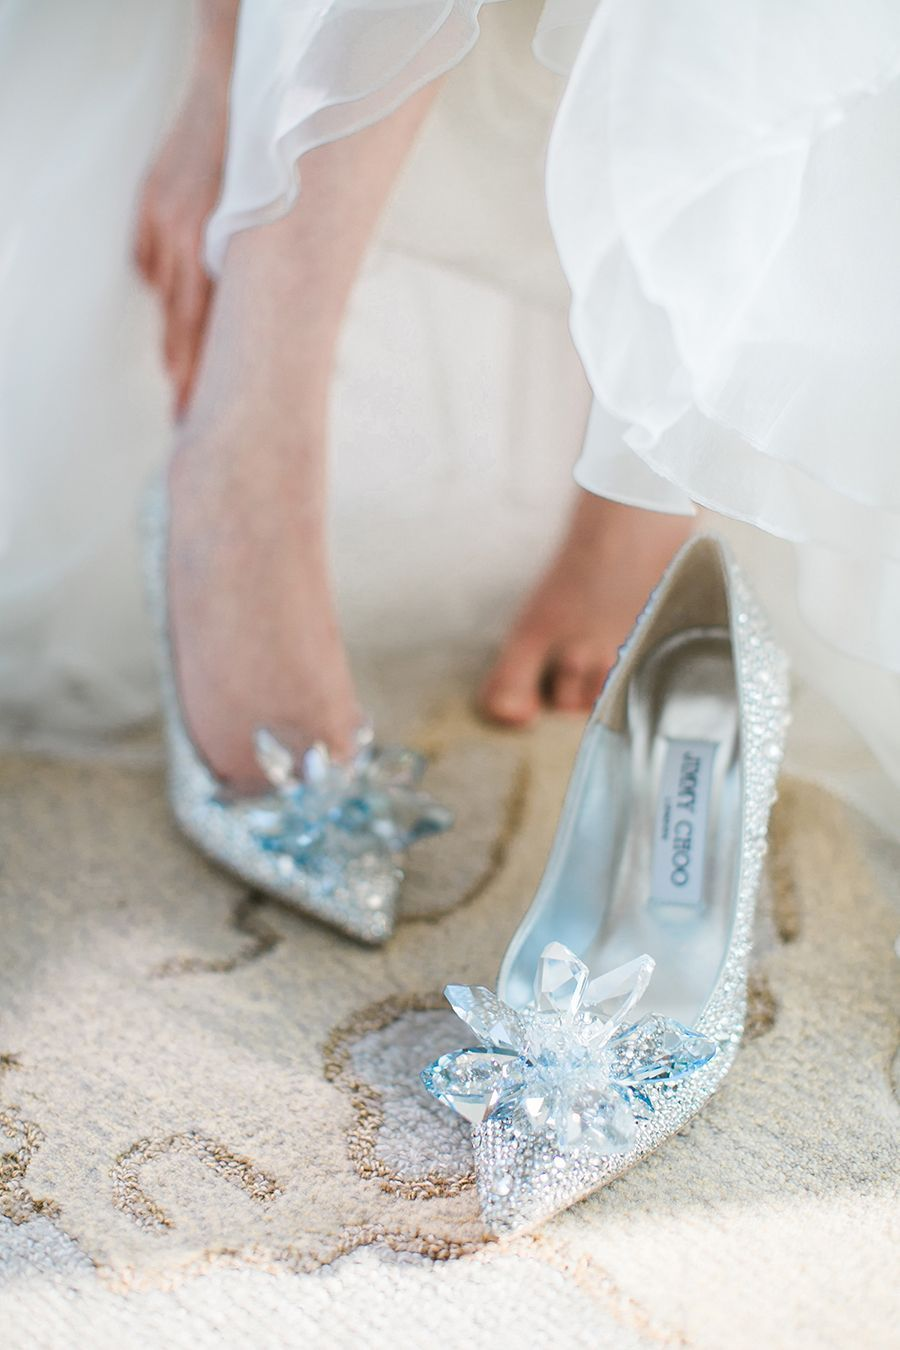 These Jimmy Choo Bespoke Cinderella Bridal Shoes Facebook And Instagram The Wedding Scoop Weddingsho Jimmy Choo Wedding Shoes Fun Wedding Shoes Bride Shoes